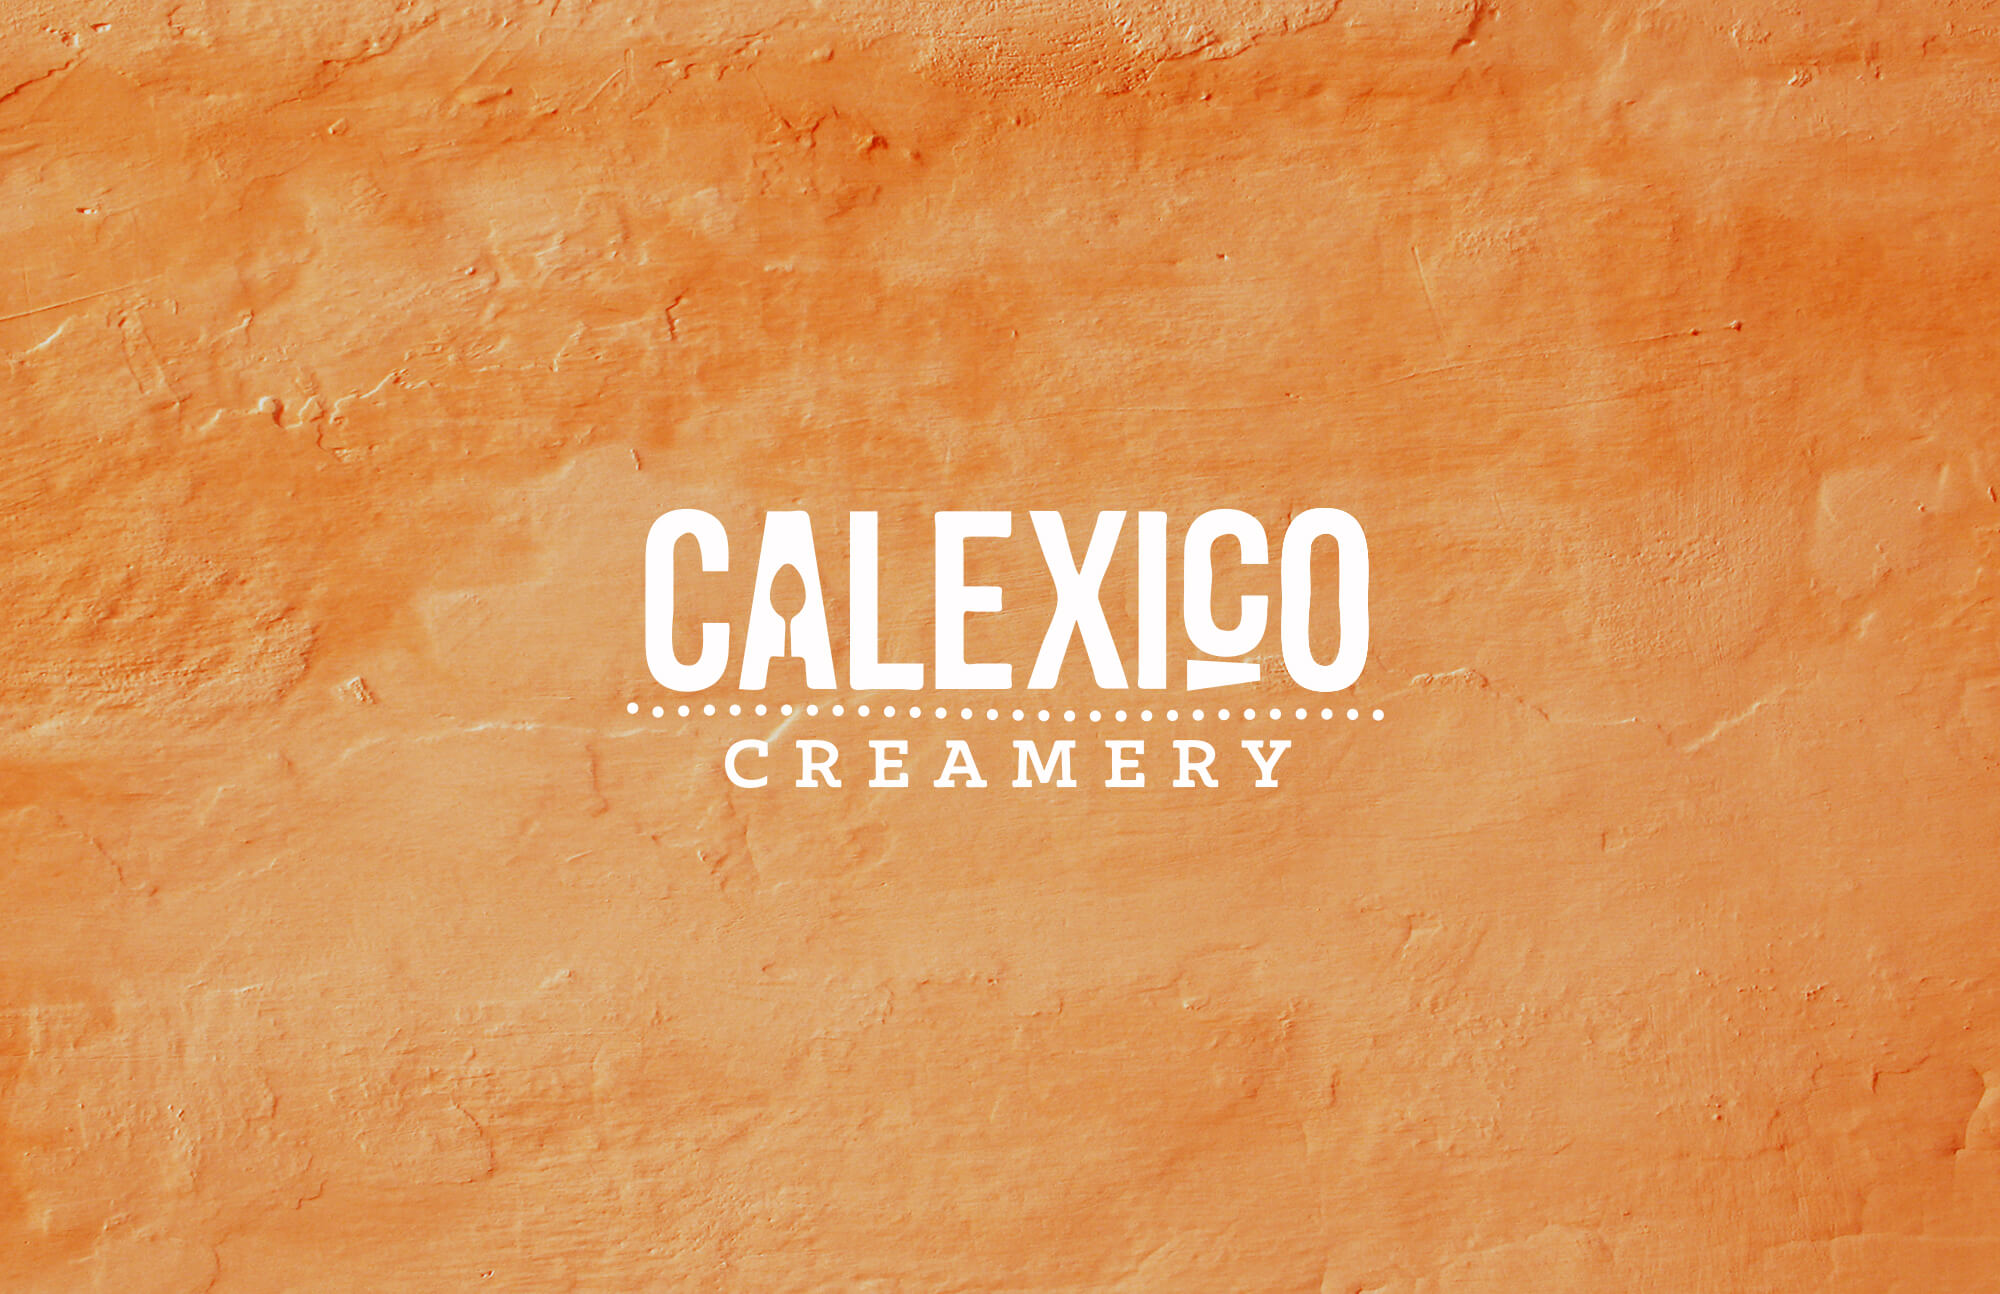 calexico-creamery-background-paint-logo